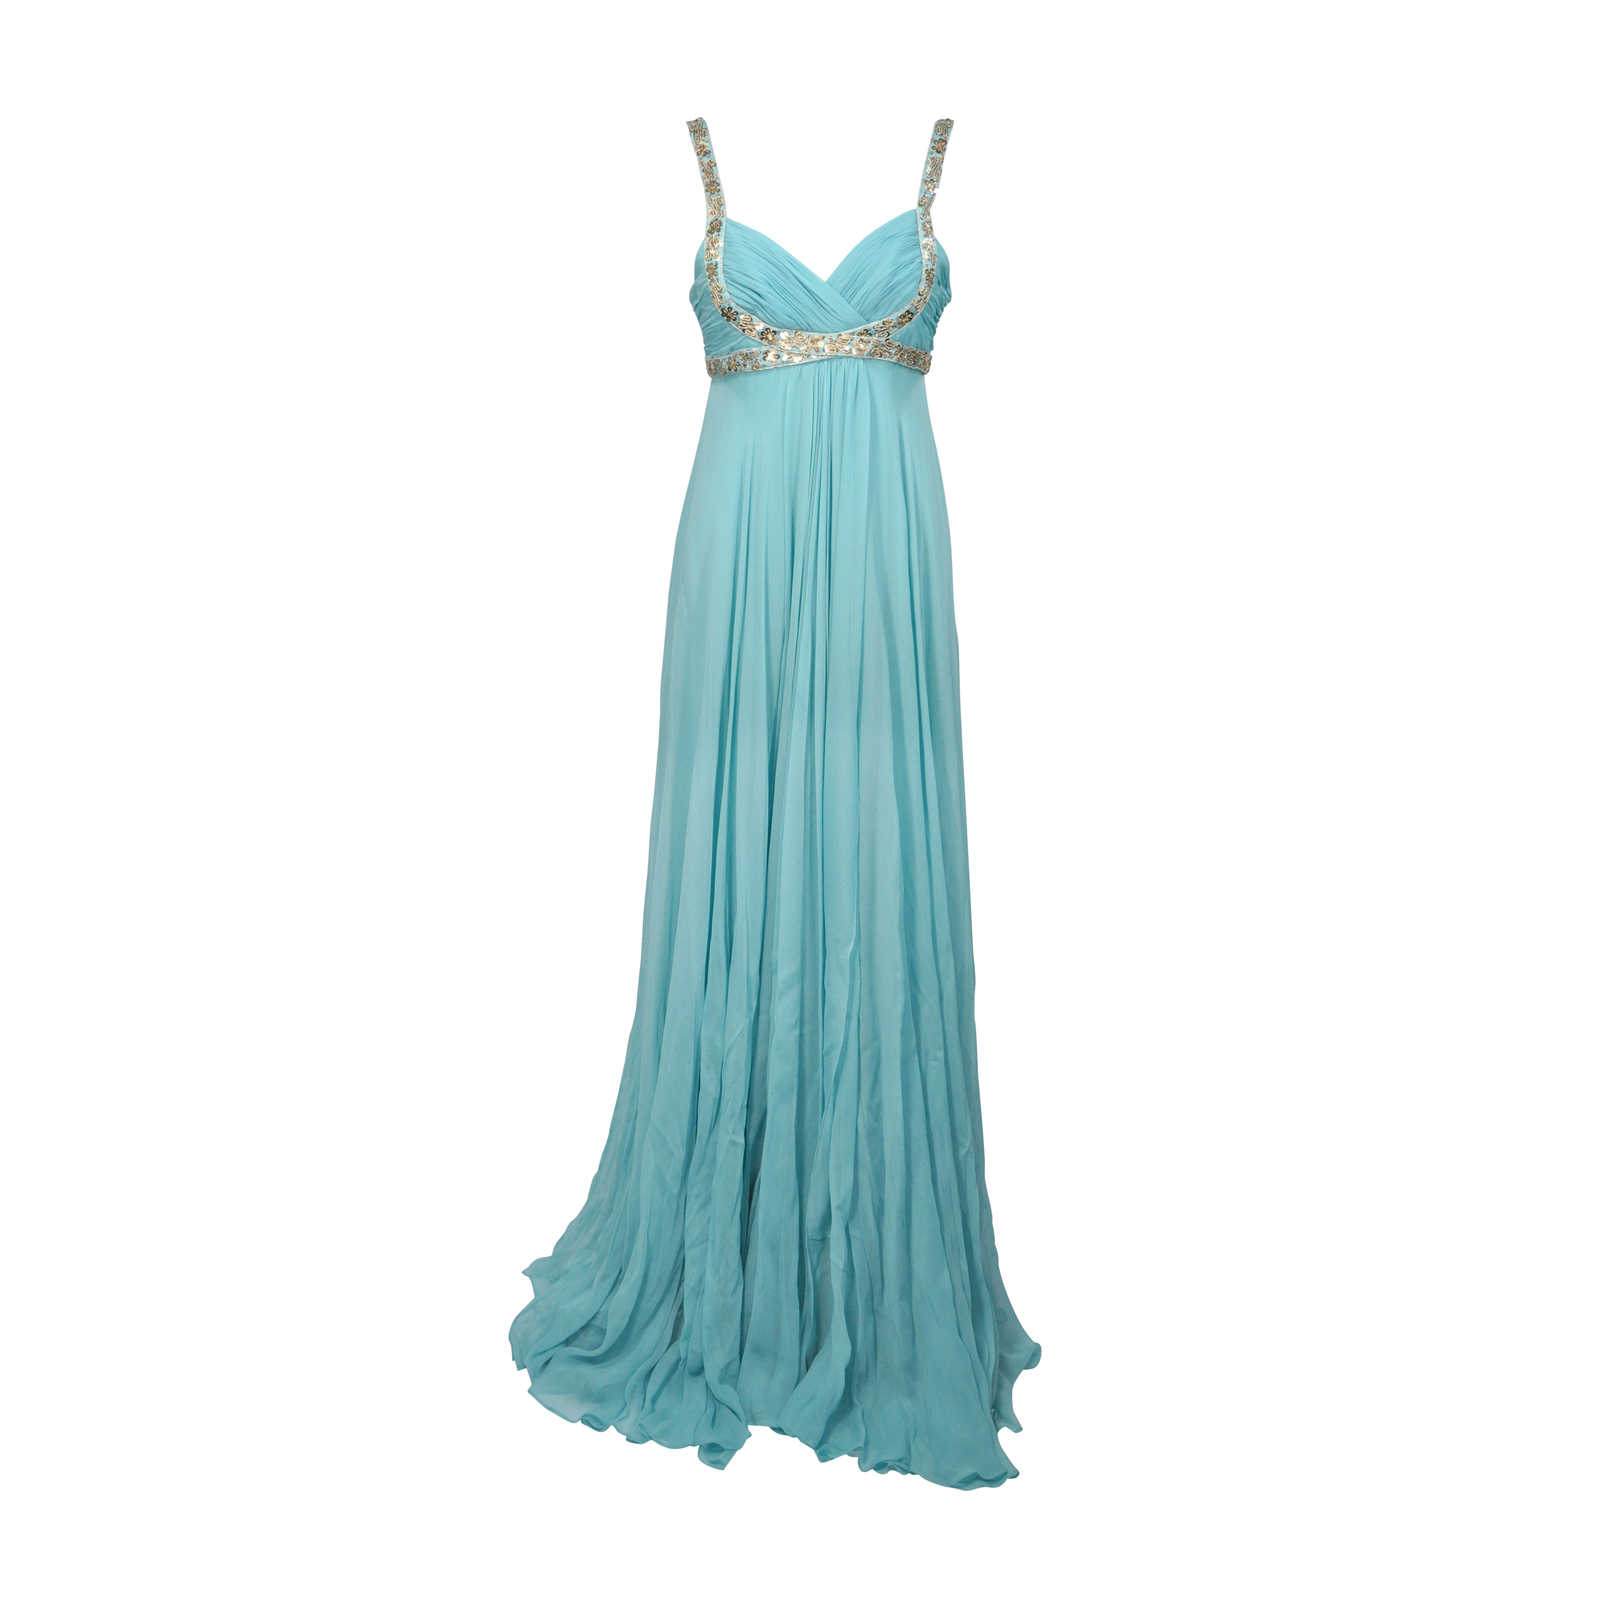 34949a03903 Authentic Second Hand Marchesa Notte Embellished Gown (PSS-126-00001) -  Thumbnail ...